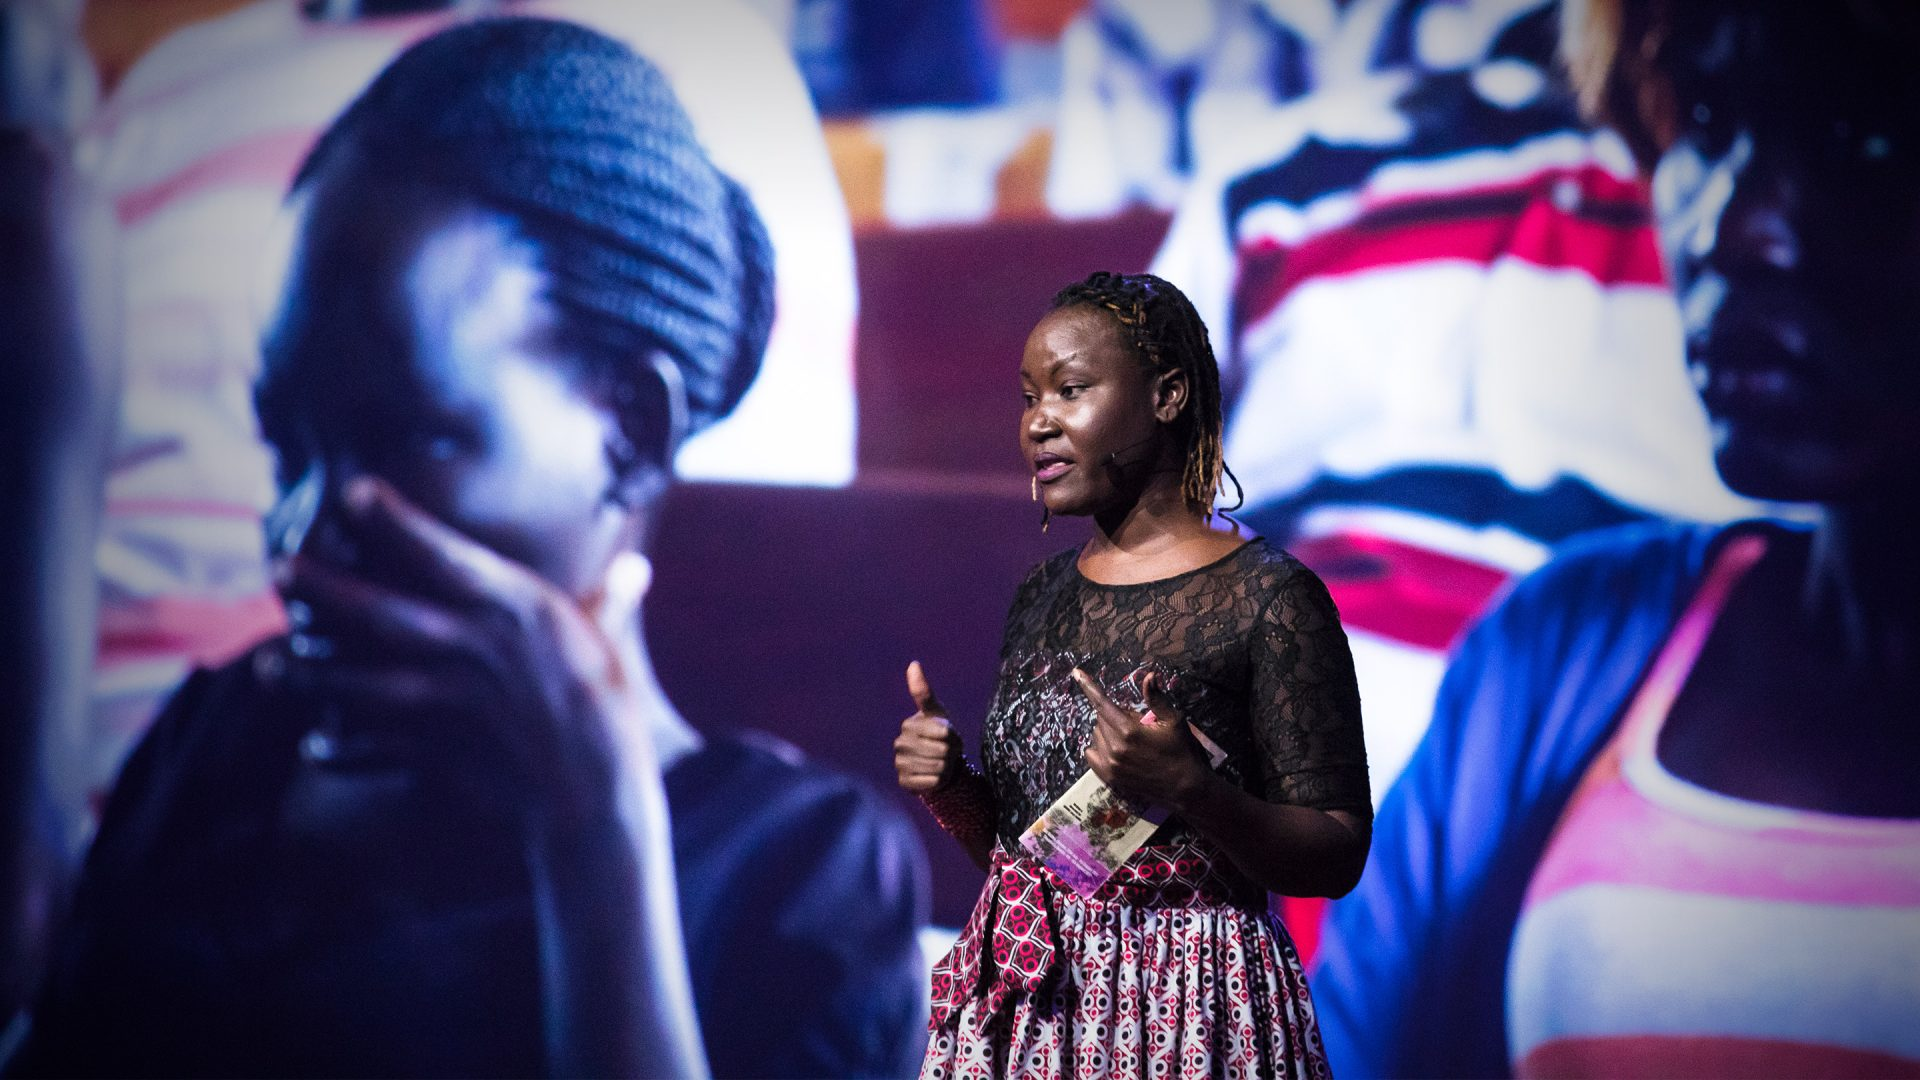 Watch this Ted Talks to  kick-start your next art world career